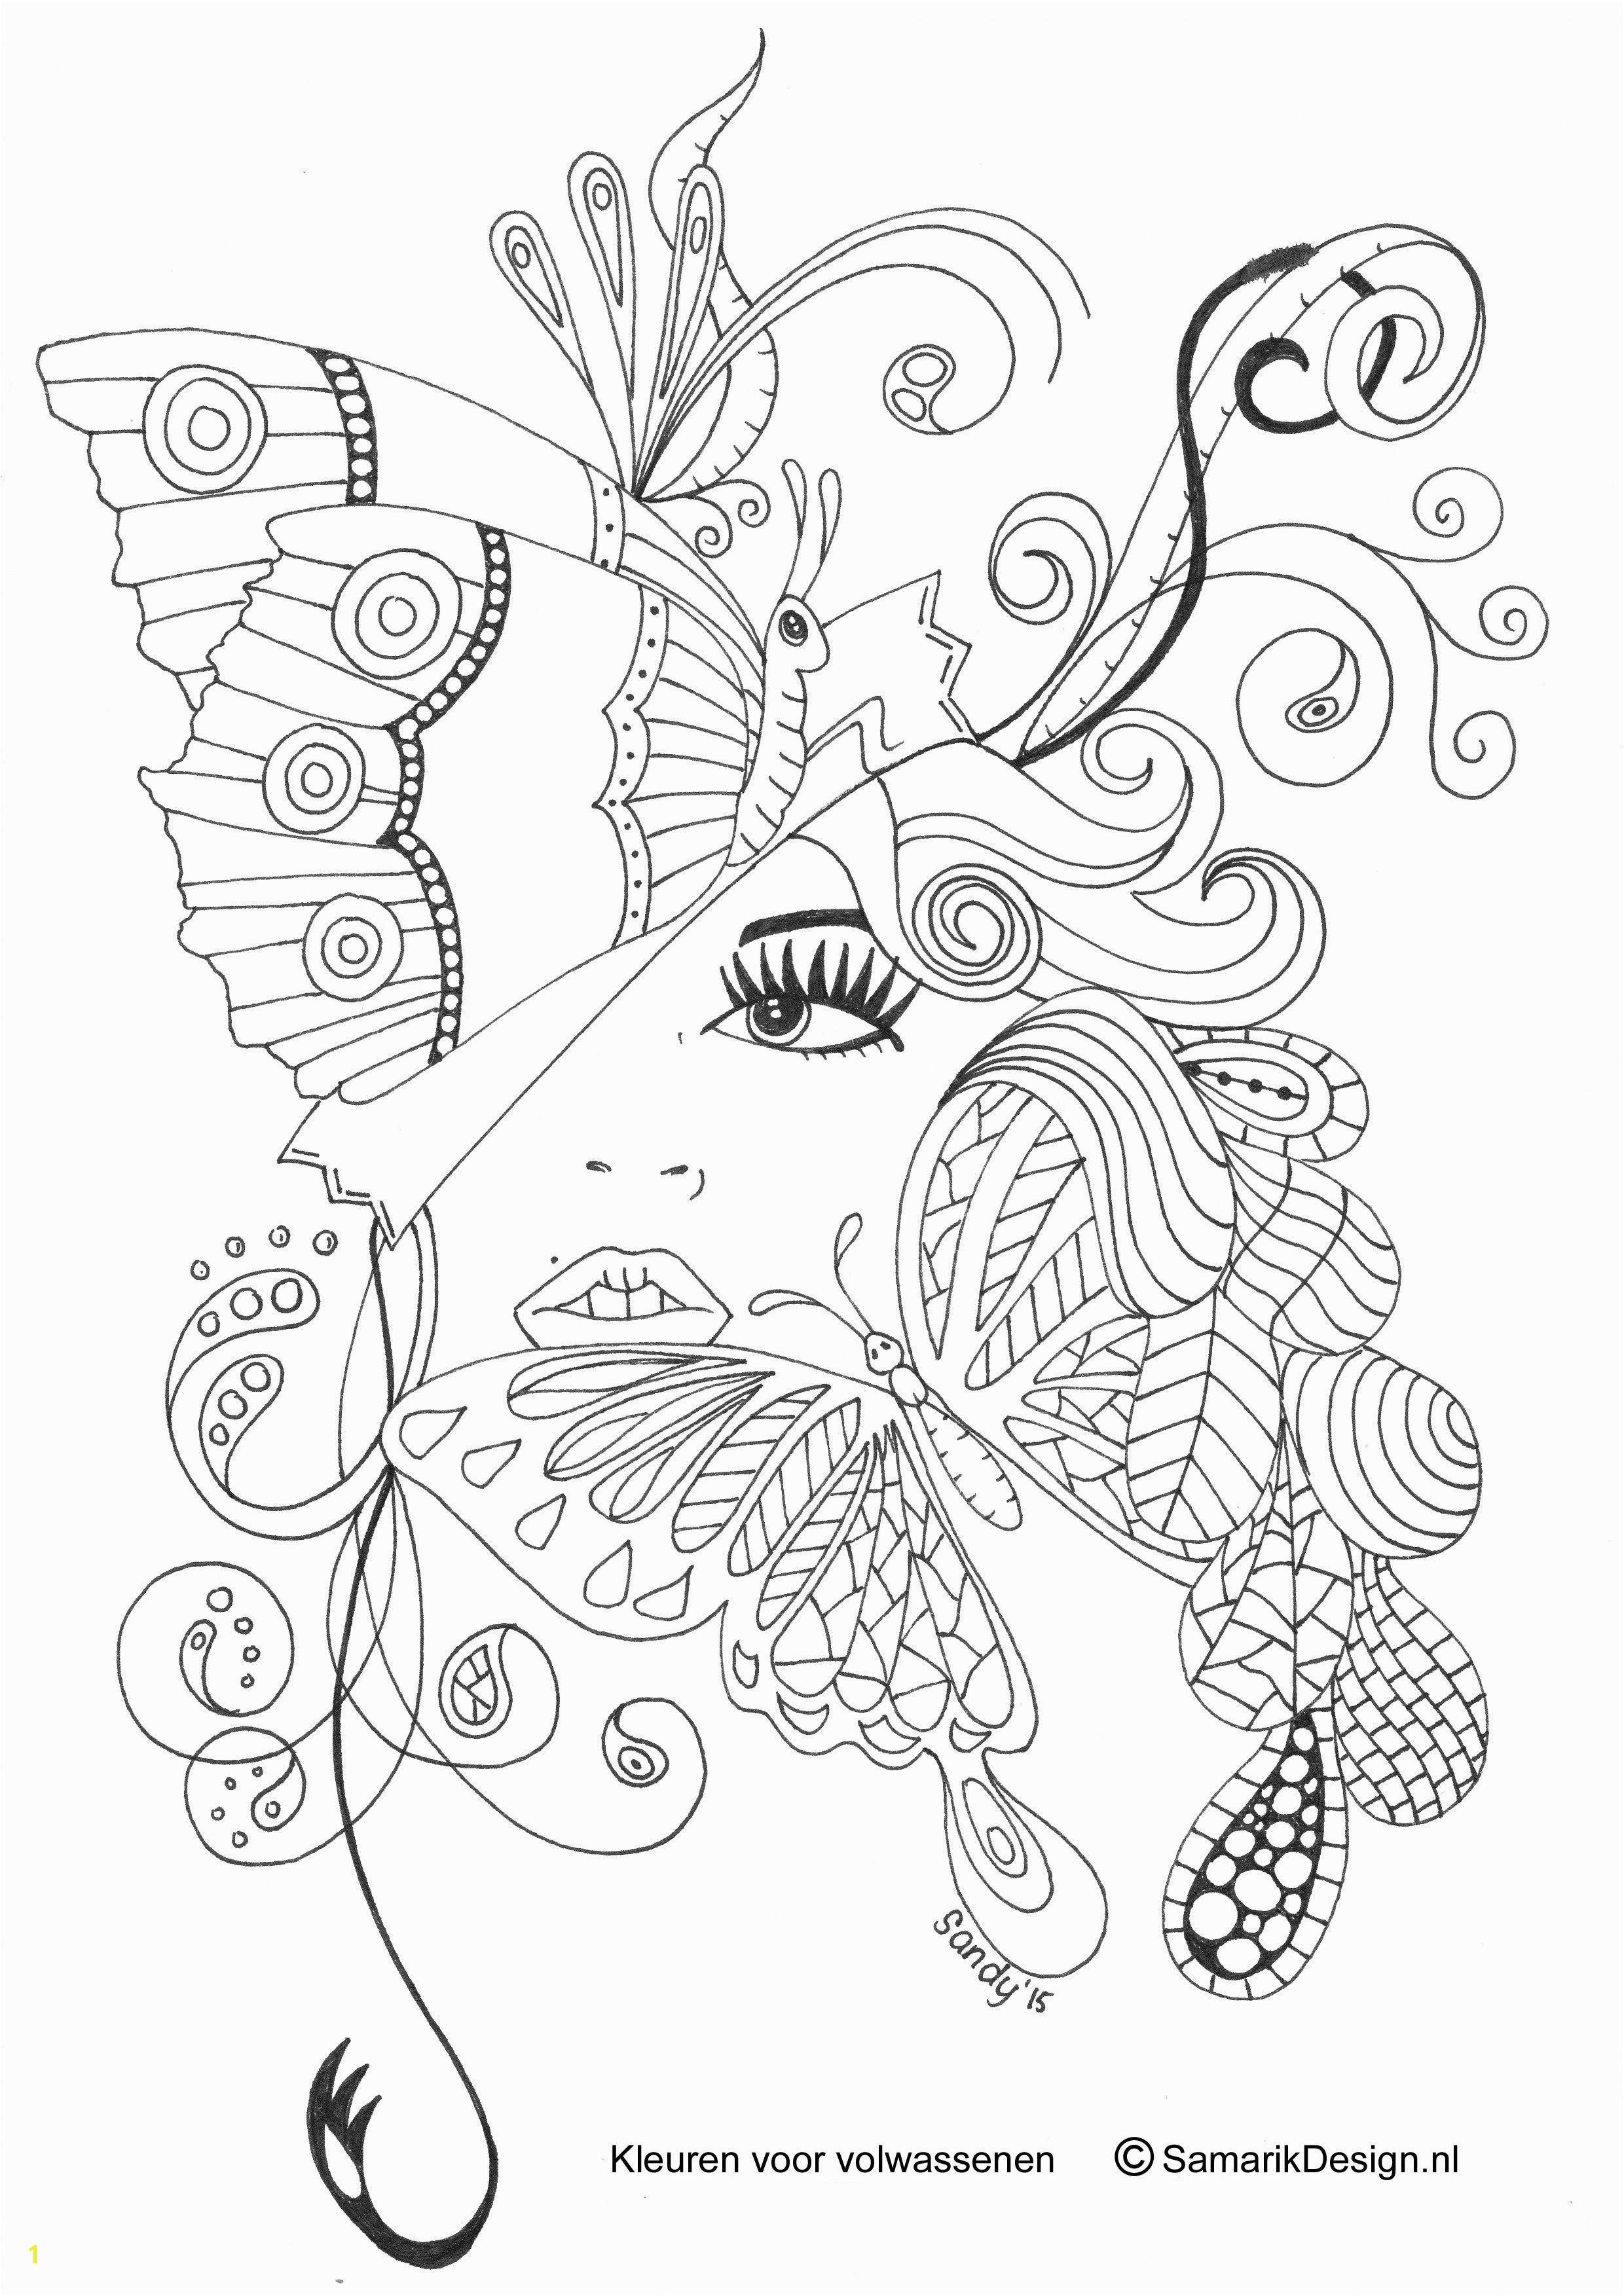 Snail Coloring Page Beautiful butterfly Papillon Mariposas Vlinders Wings Graceful Amazing Snail Coloring Page Best